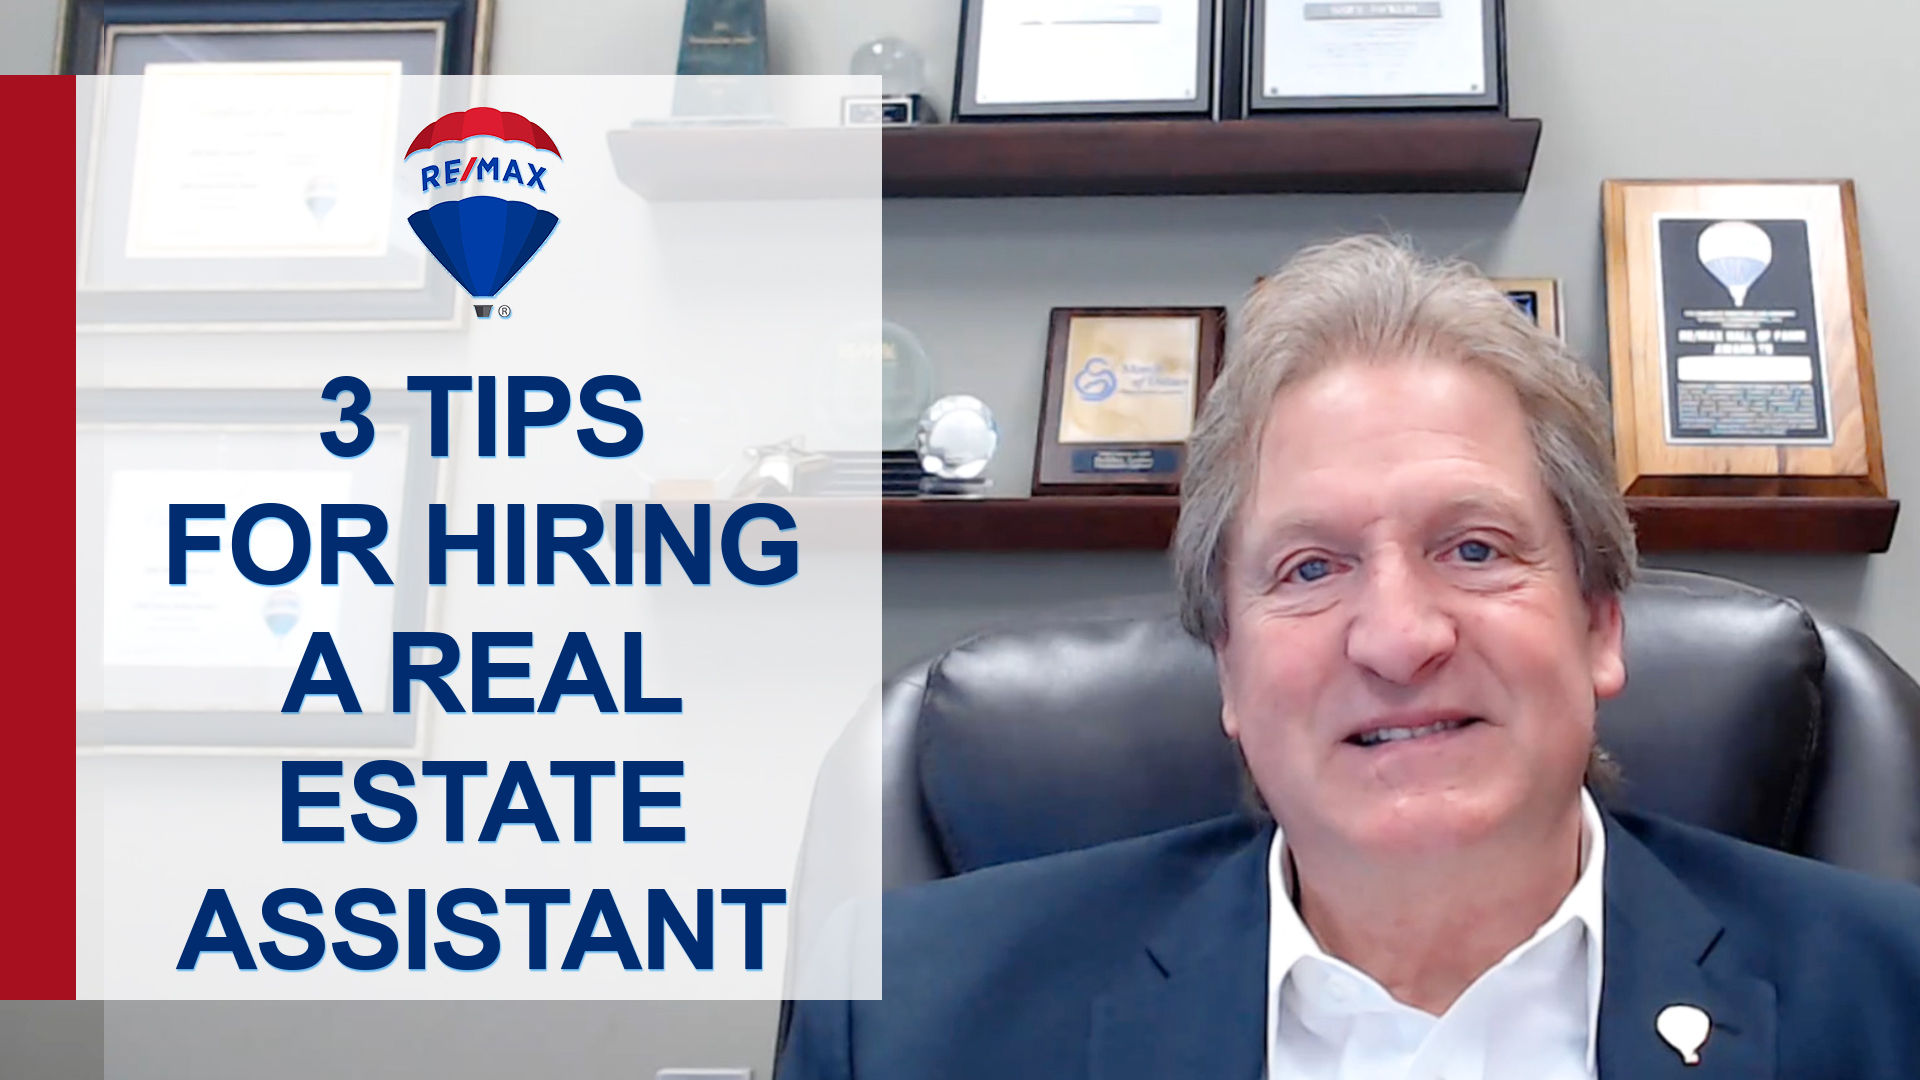 The 3 Steps to Follow When Hiring an Assistant